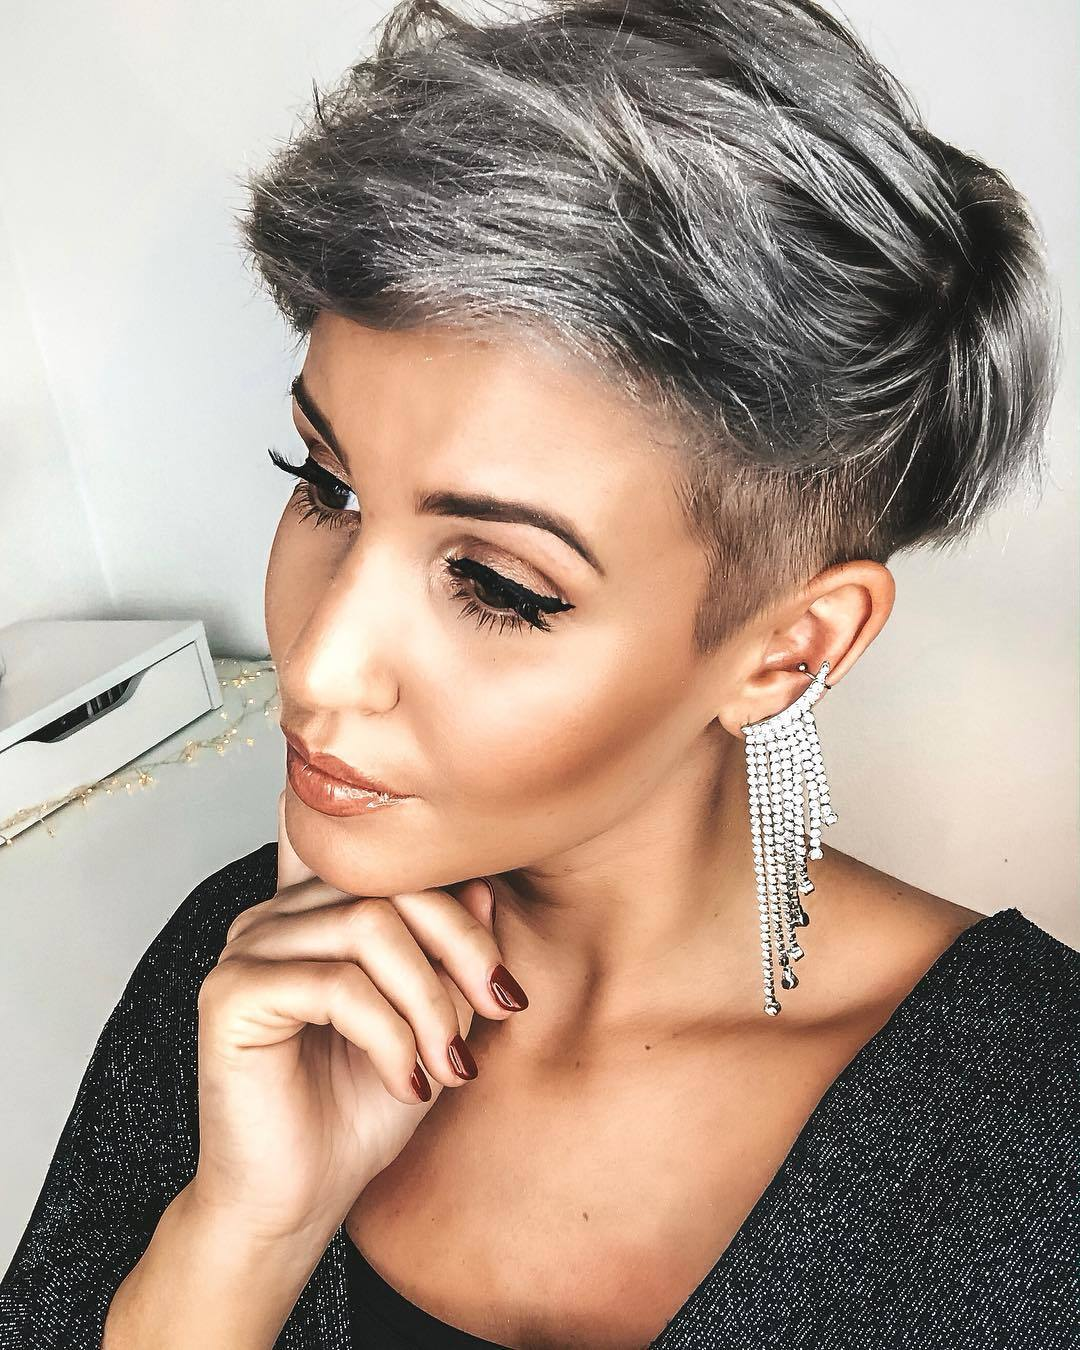 66 Best Pixie Cut Hairstyles For 2020 You Will Want To See